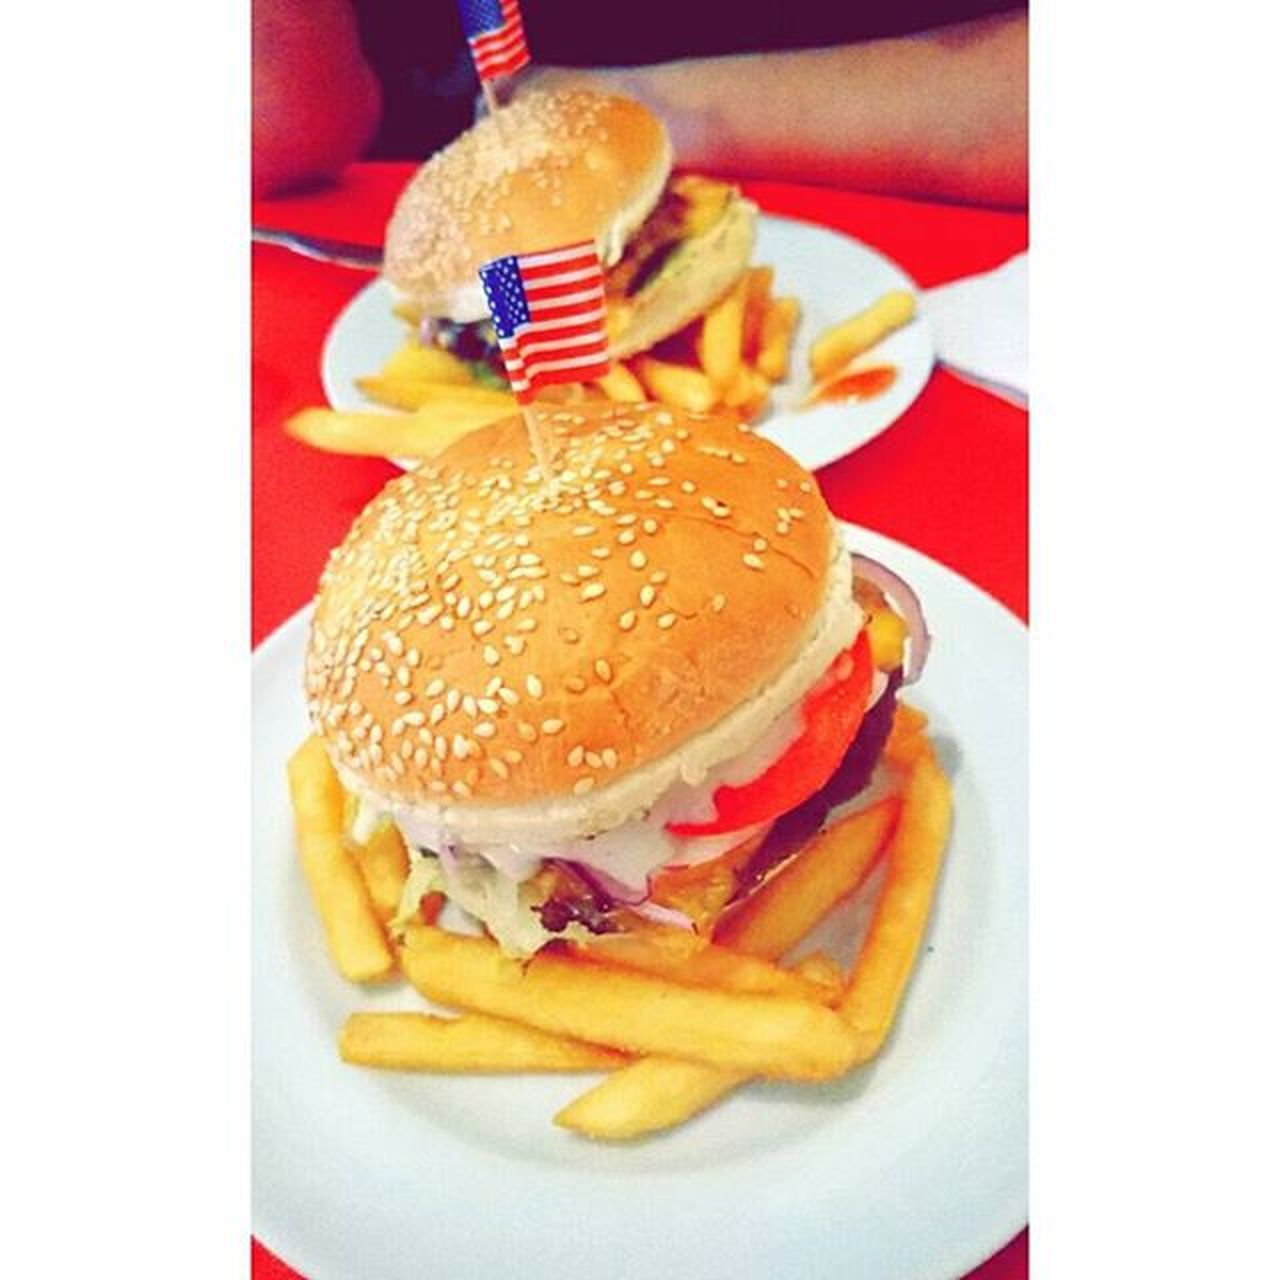 food and drink, hamburger, food, unhealthy eating, burger, ready-to-eat, indulgence, bun, table, indoors, close-up, fast food, freshness, flag, plate, slice, collage, no people, day